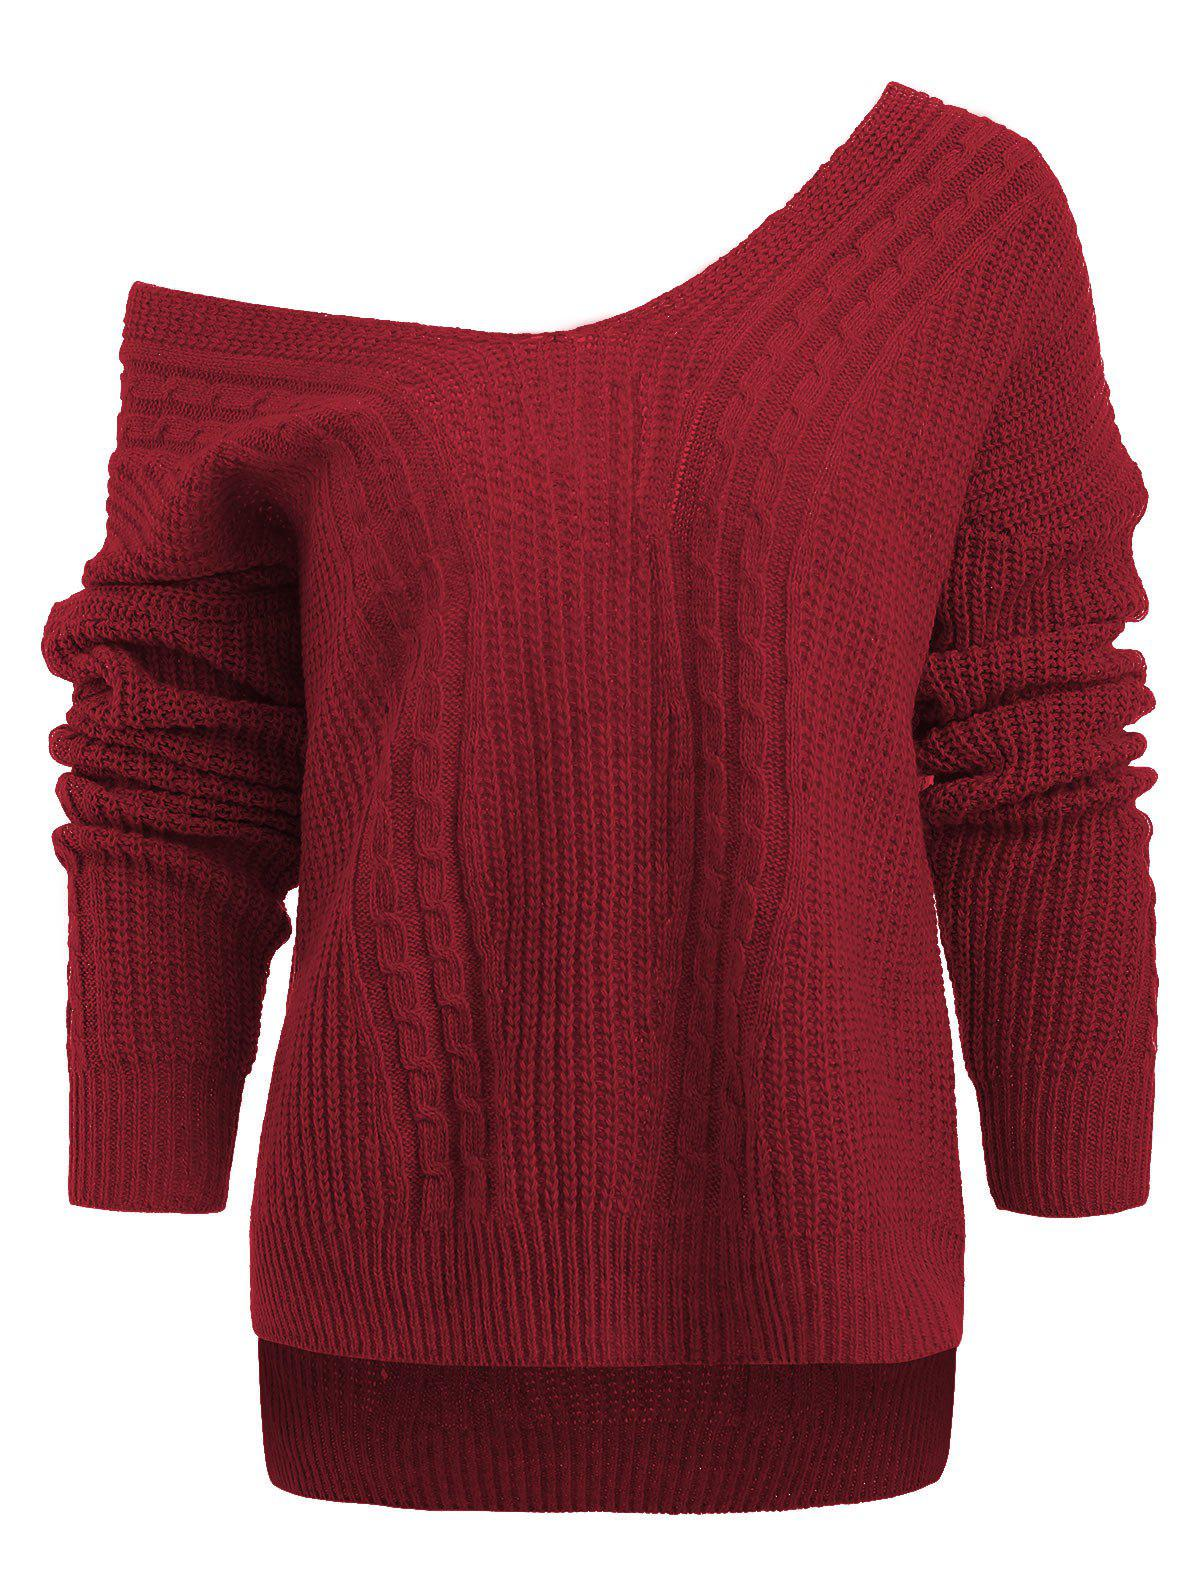 Trendy Drop Shoulder Hemp Flower Sweater